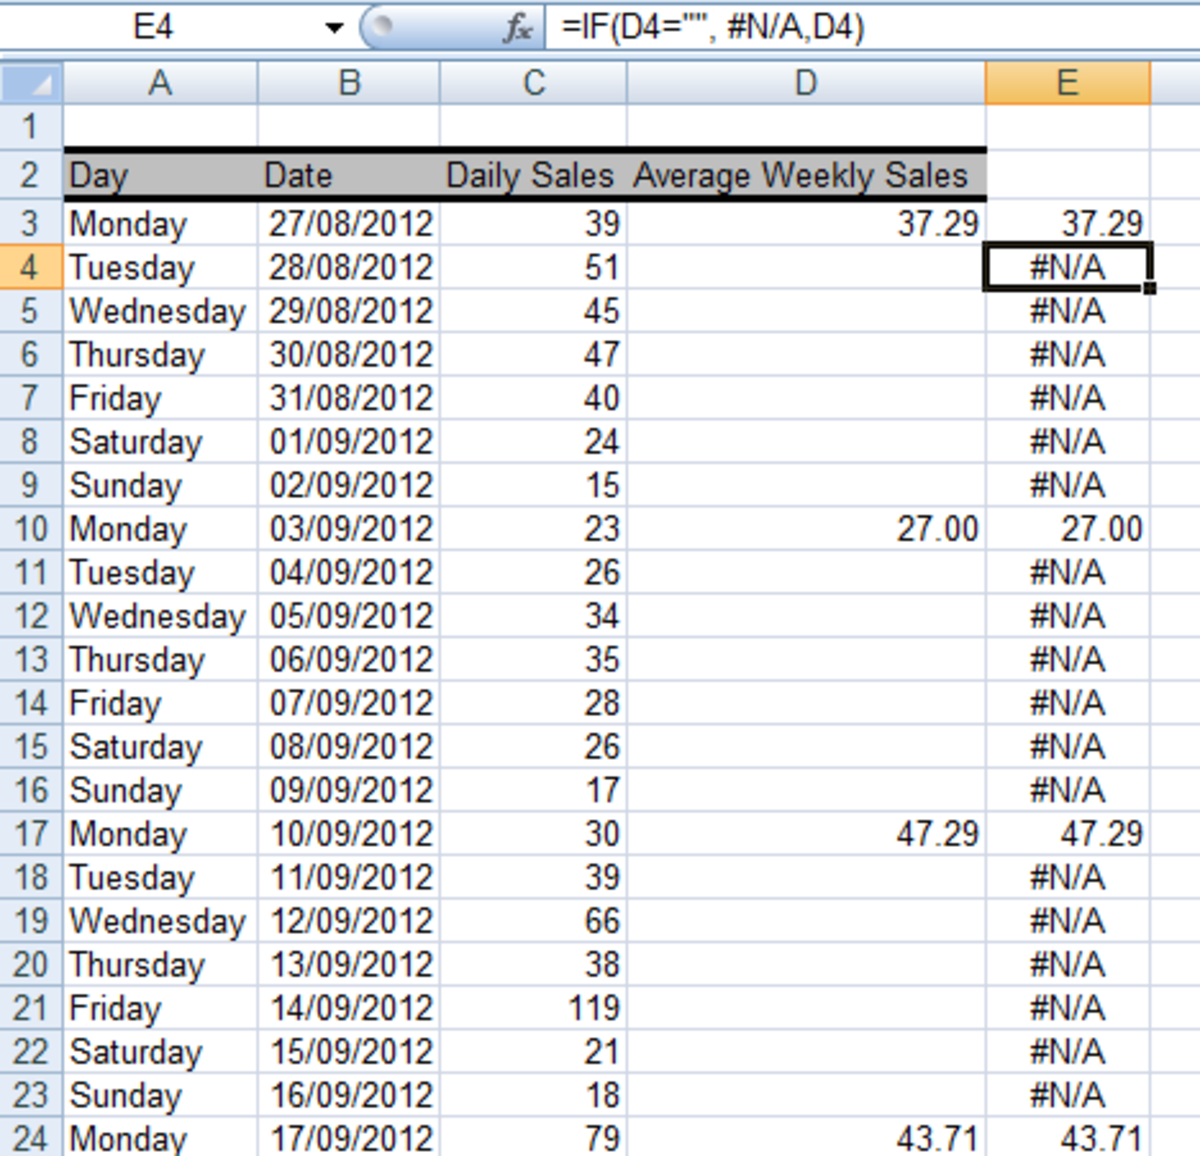 Ediblewildsus  Unique How To Get Excel  And  To Ignore Empty Cells In A Chart Or  With Exquisite Using The If Function In A Formula To Convert Empty Cells To Na With Breathtaking How To Combine Two Columns In Excel  Also Print Labels From Excel  In Addition Excel Watermarks And Edit Excel As Well As Sort Excel Columns Additionally Excel Windows Side By Side From Turbofuturecom With Ediblewildsus  Exquisite How To Get Excel  And  To Ignore Empty Cells In A Chart Or  With Breathtaking Using The If Function In A Formula To Convert Empty Cells To Na And Unique How To Combine Two Columns In Excel  Also Print Labels From Excel  In Addition Excel Watermarks From Turbofuturecom